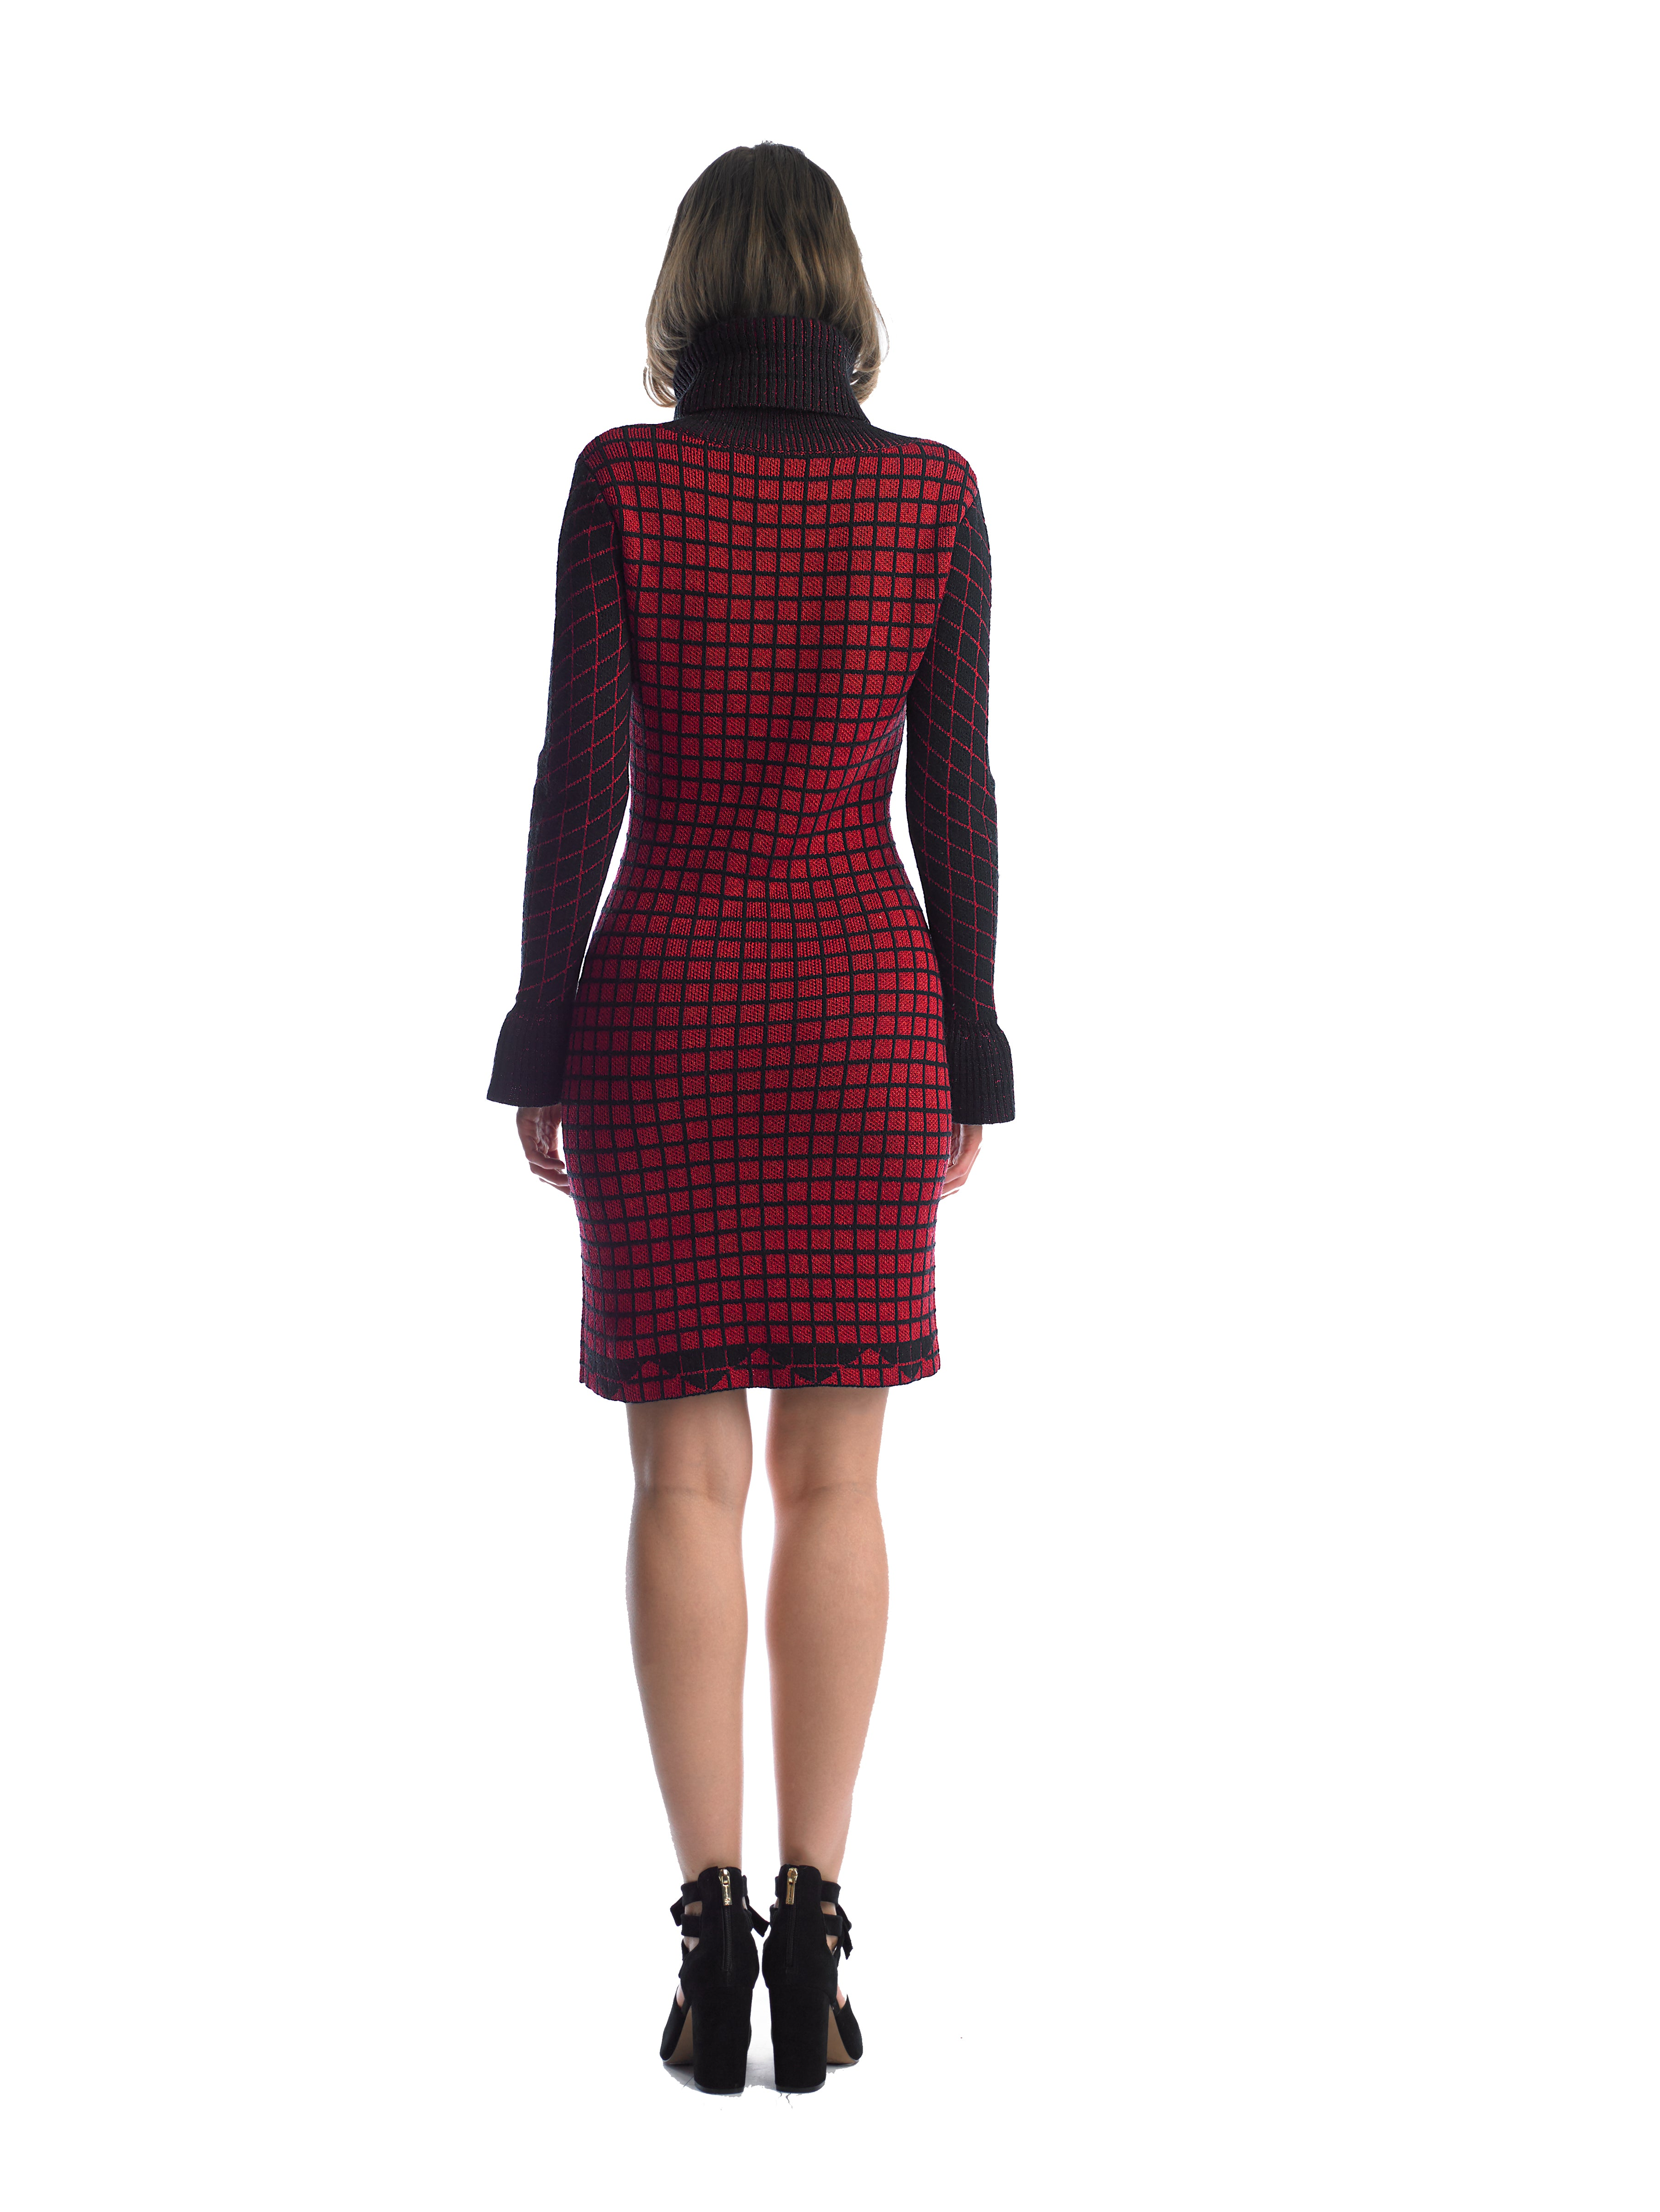 Historic New York Polonaise Knit Plaid Dress - Historic New York